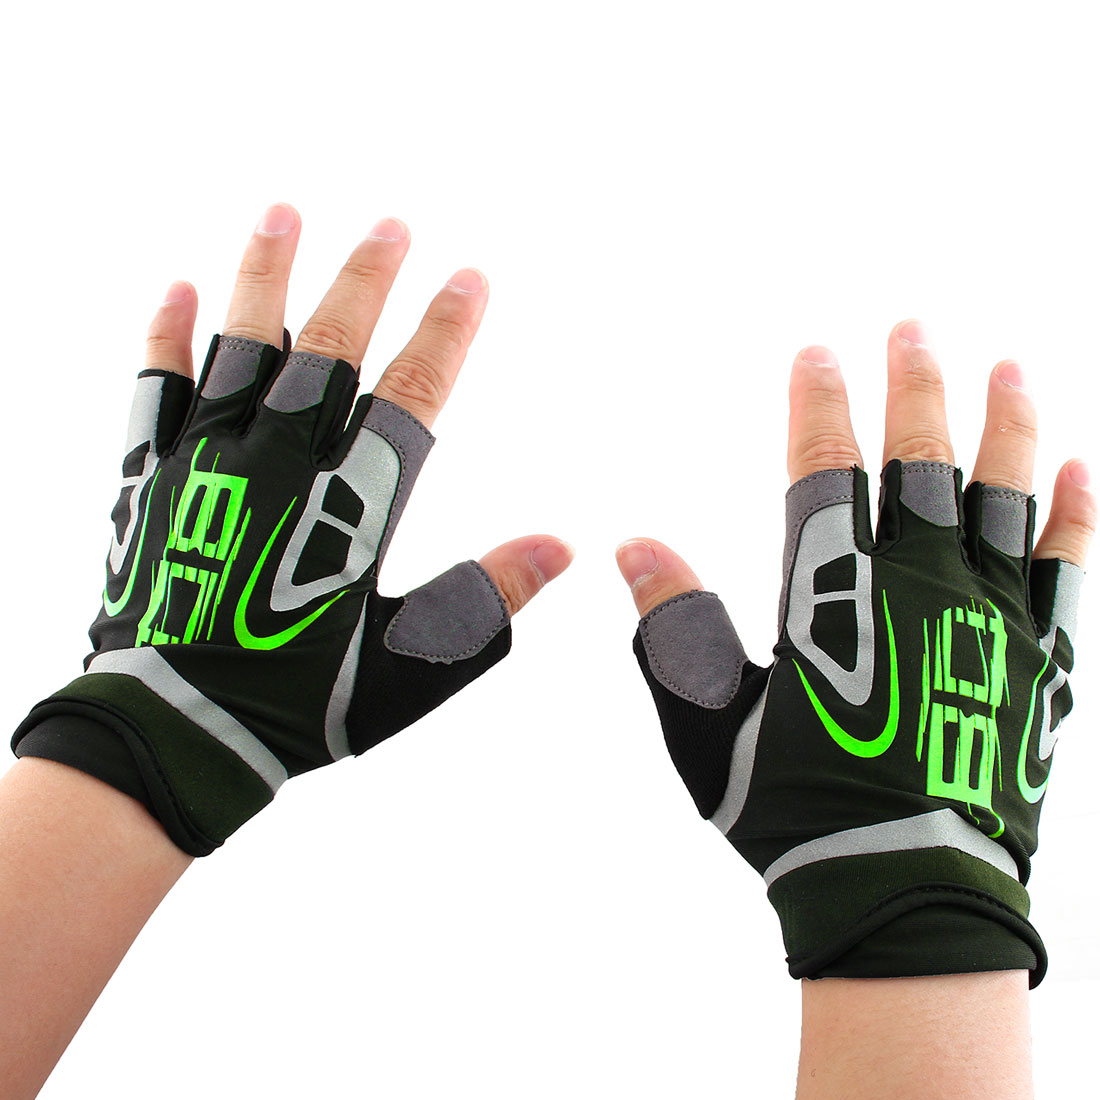 Boodun Authorized Outdoor Sports Cycling Gym Workout Training Exercise Weight Lifting Non-slip Half Finger Gloves Green Size XL Pair